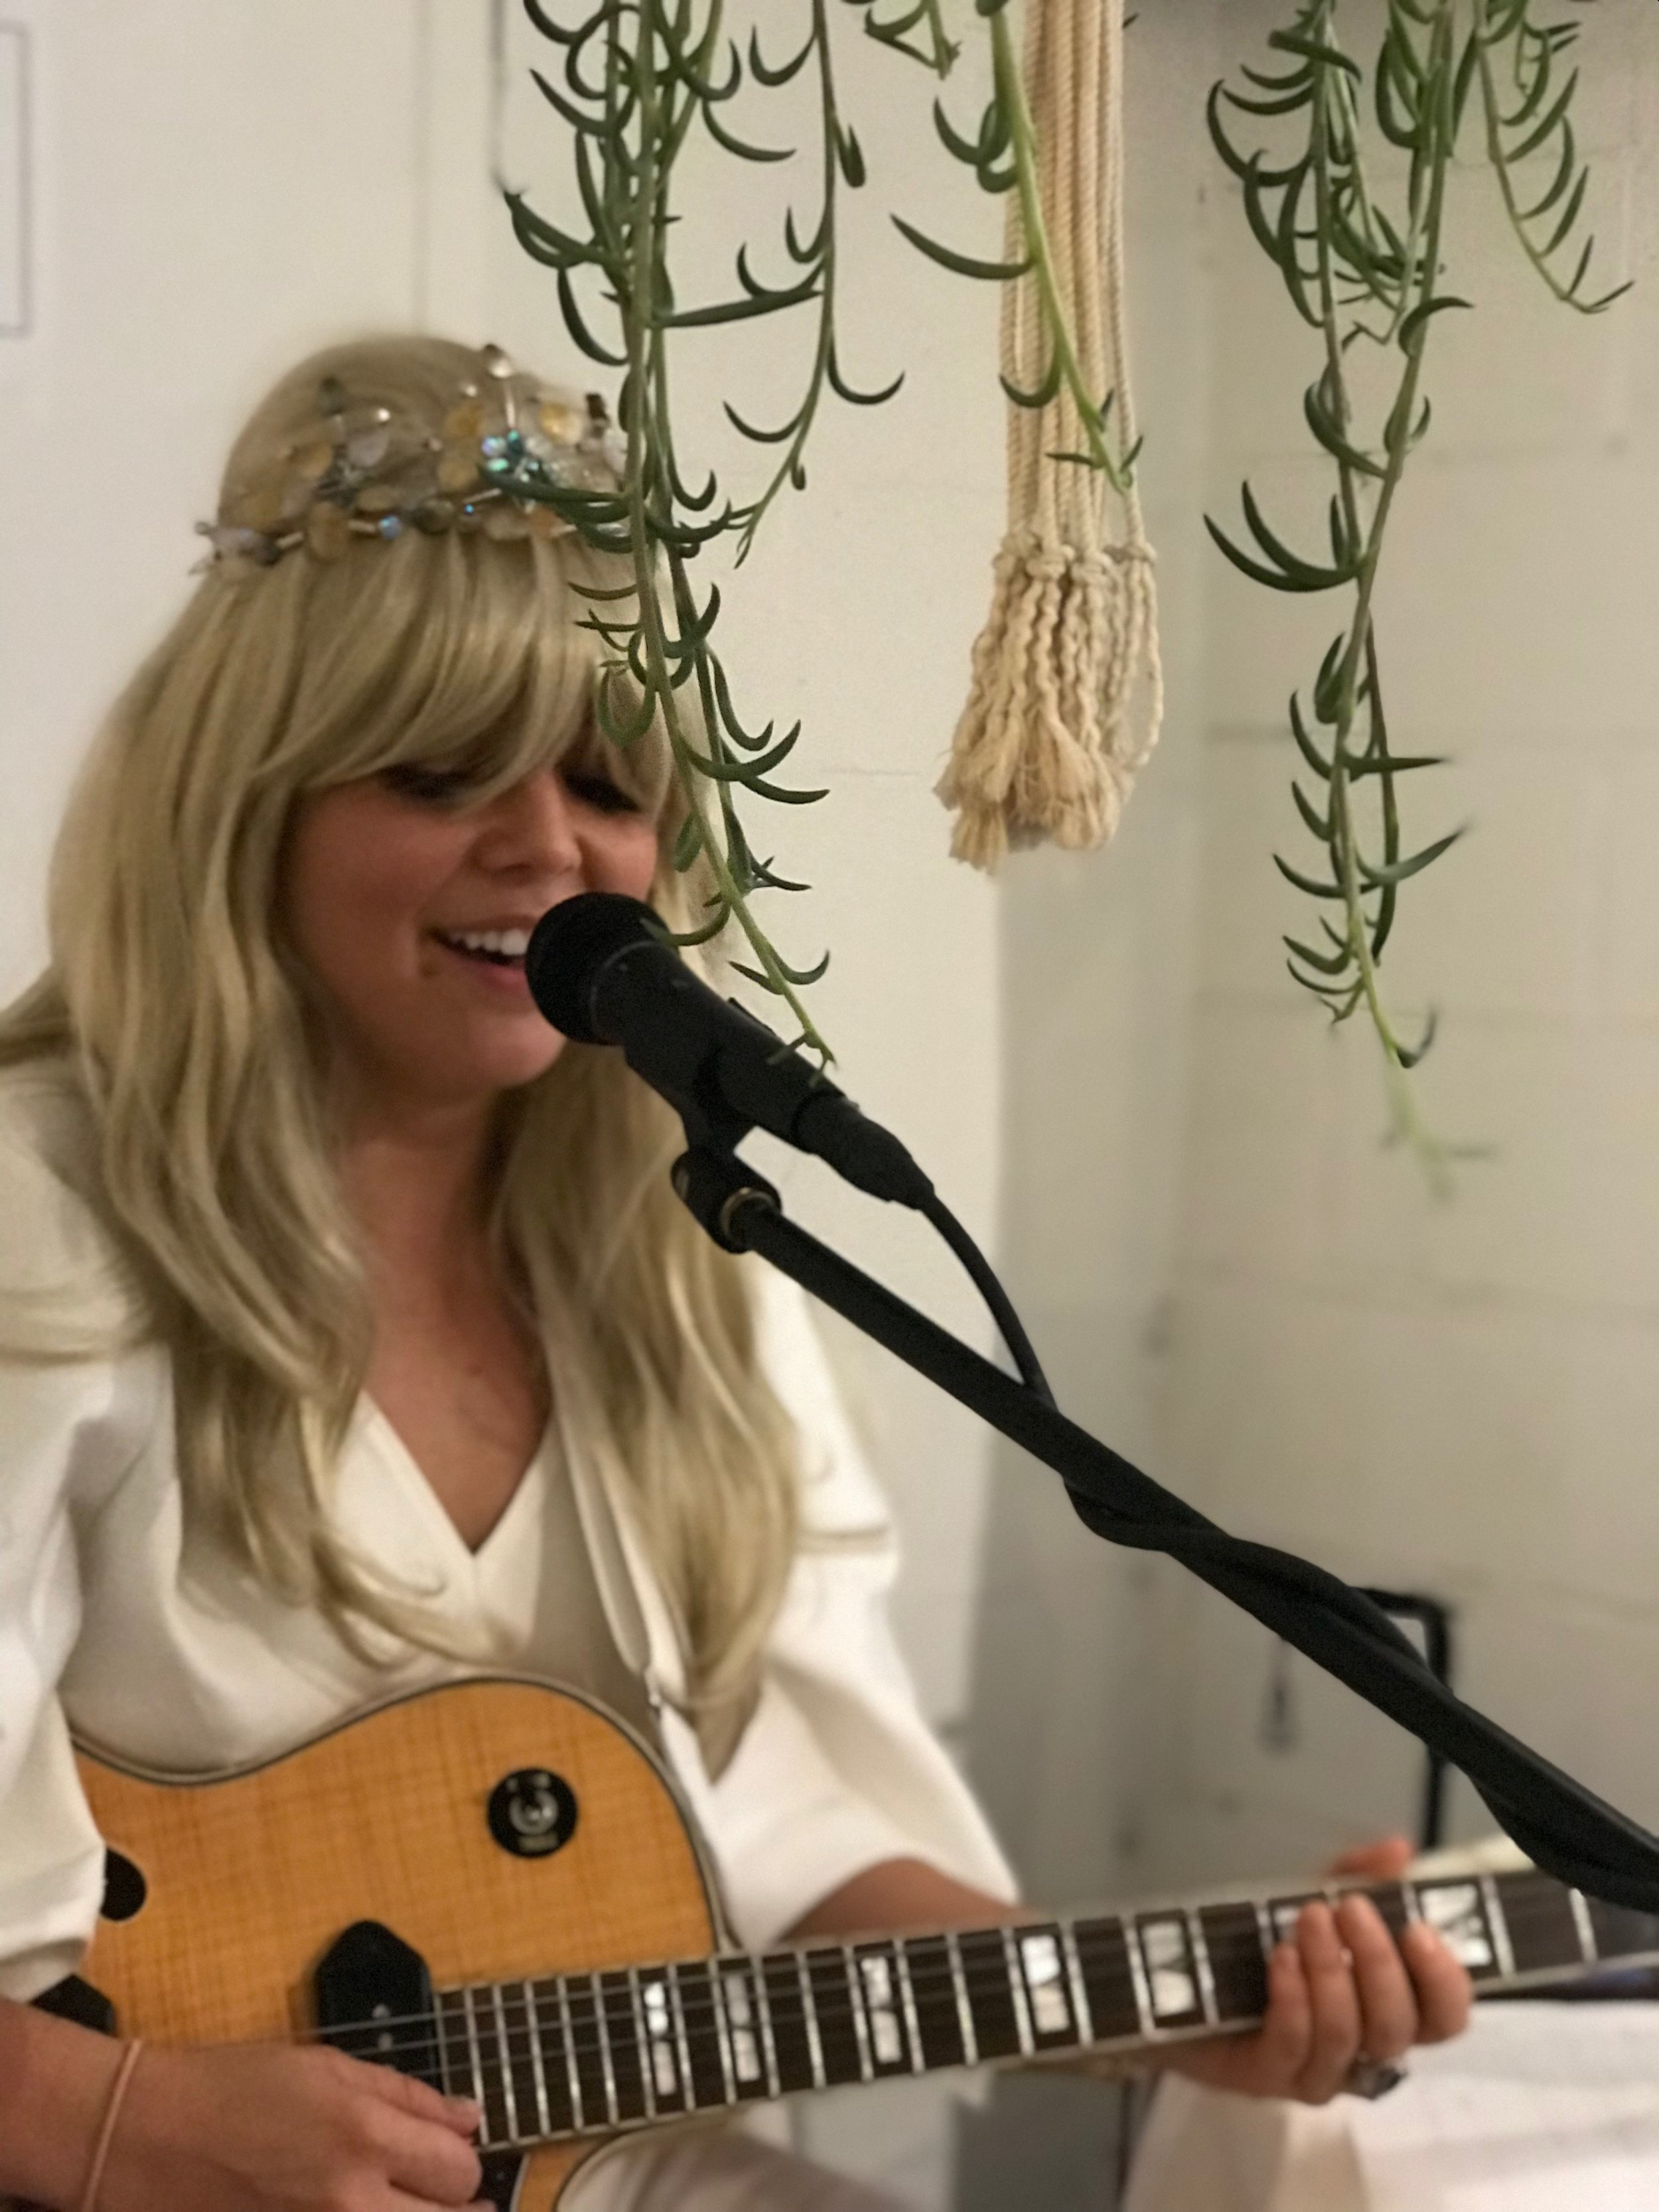 Courtney McKenna performing 'Sanctuary' at the opening of 'Flower Offerings'